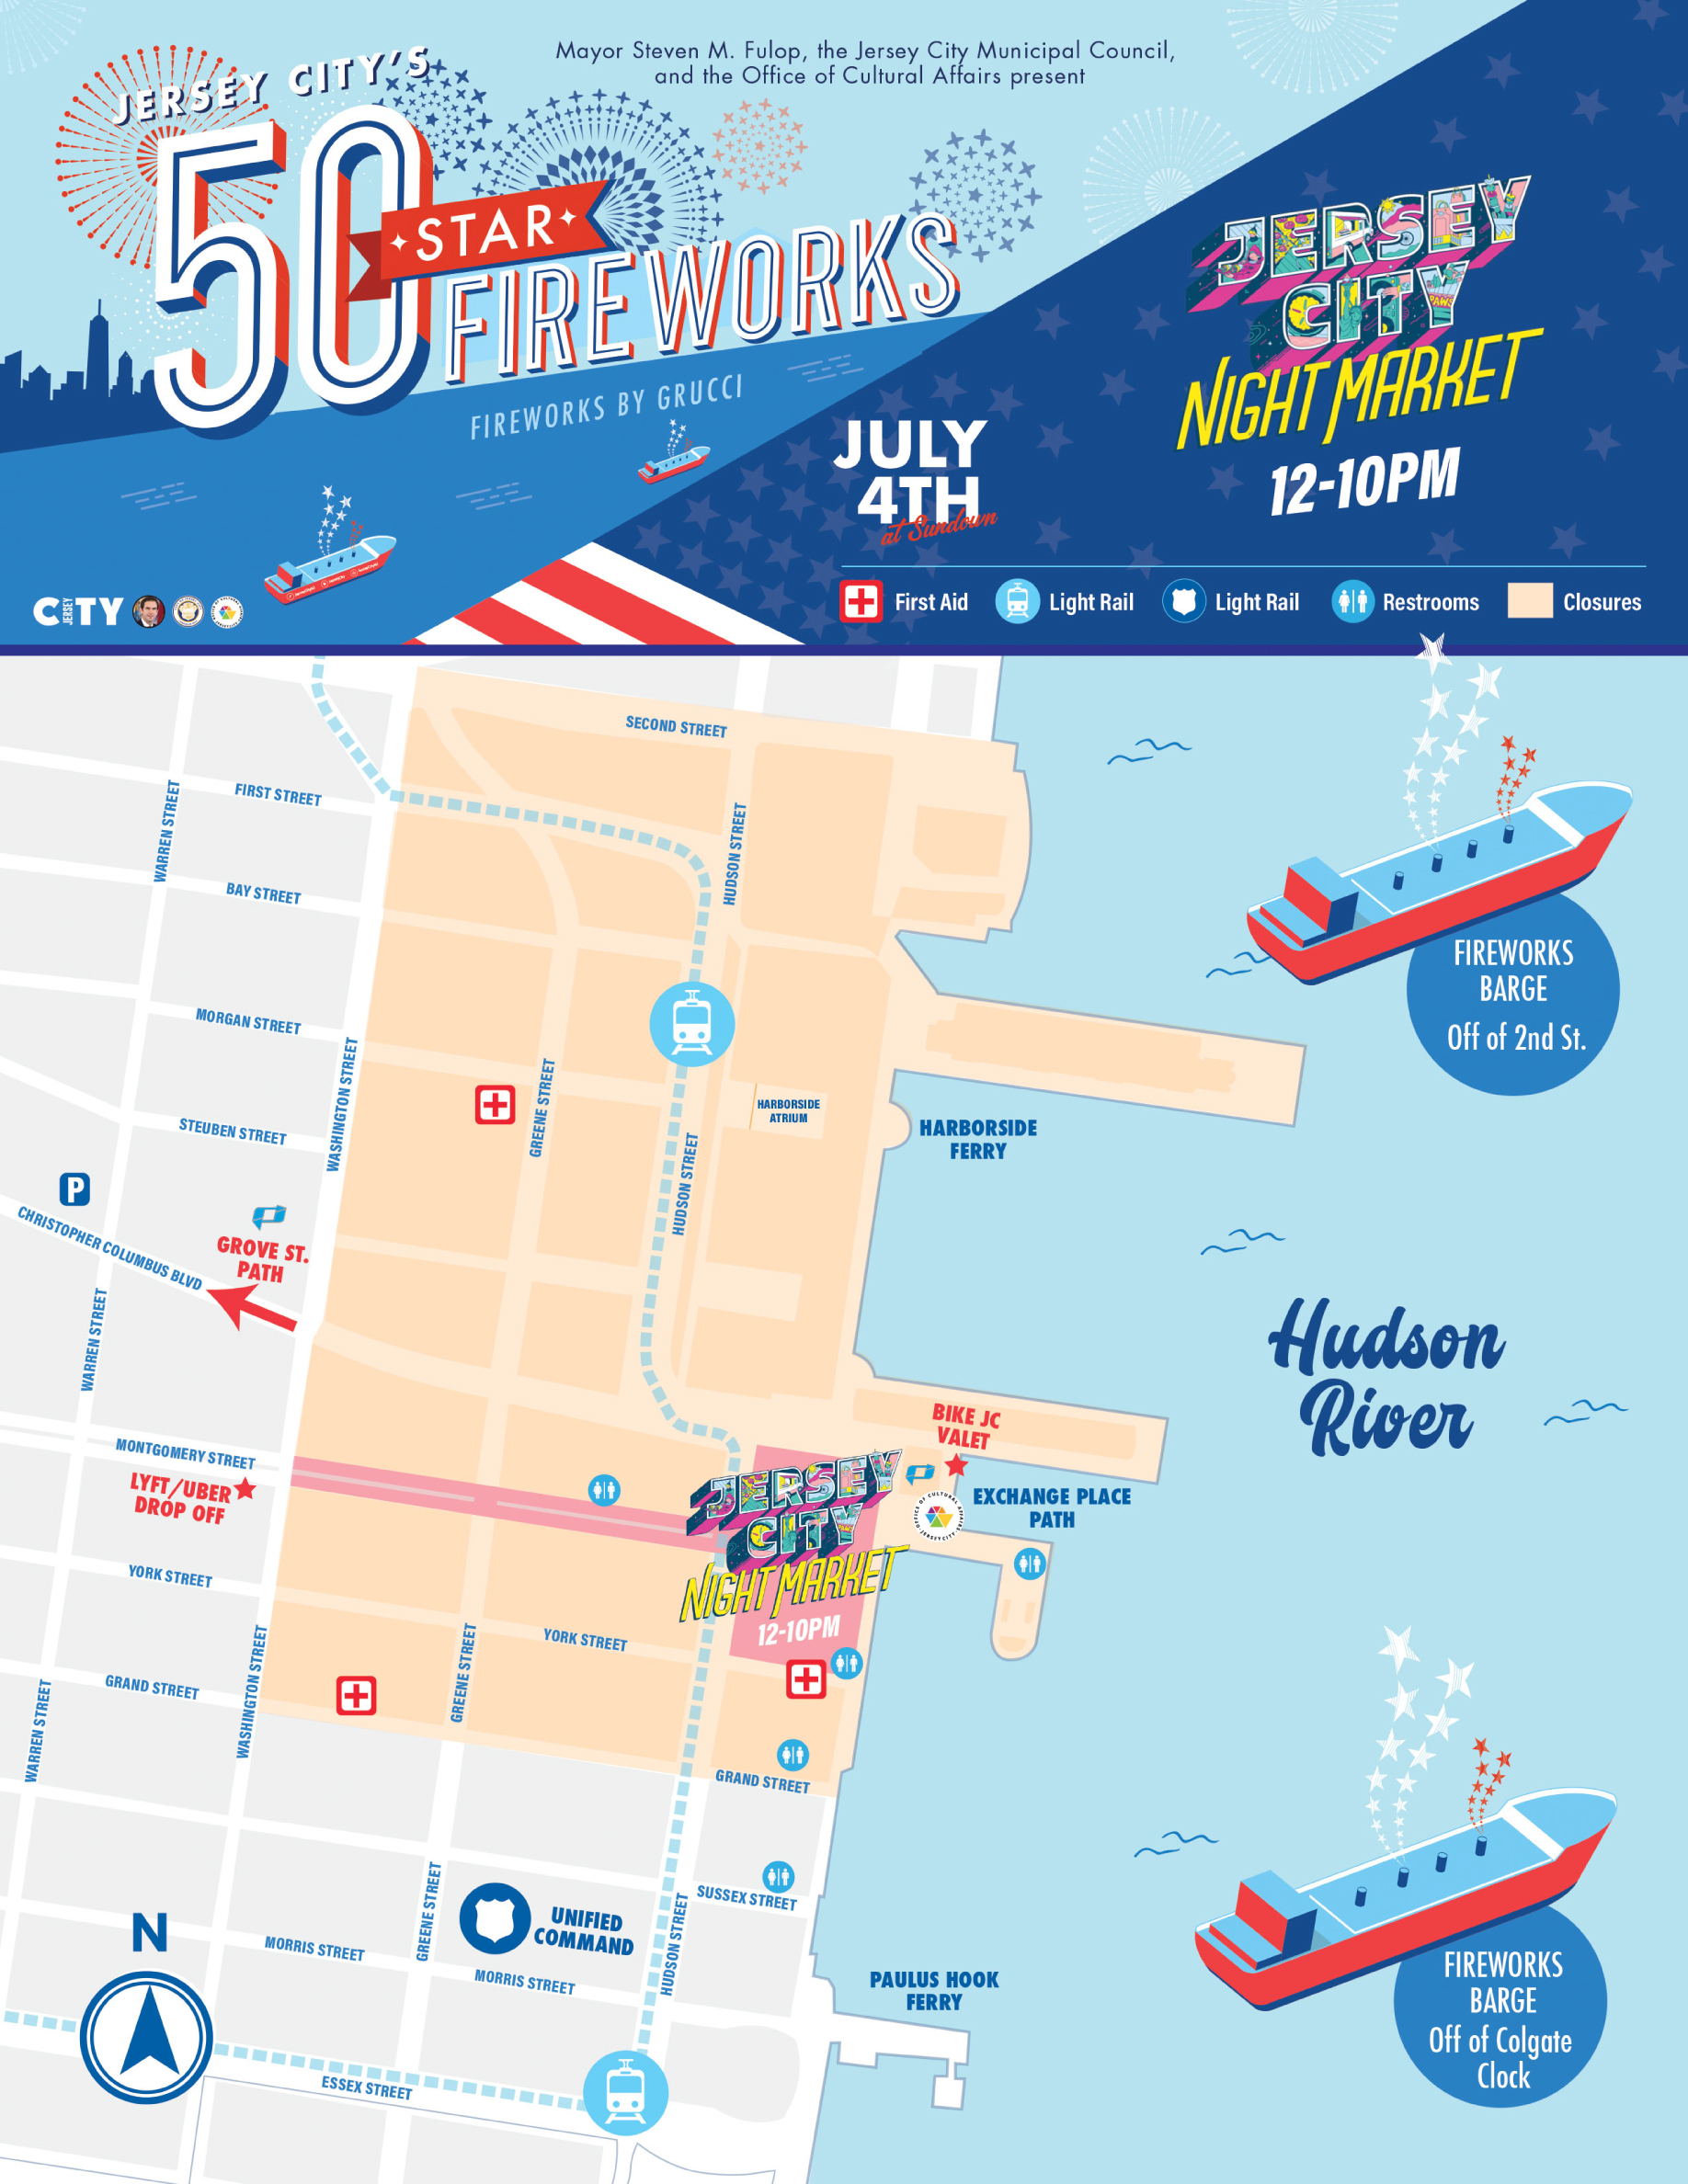 Jersey City 50 Star Firework 2021 map Showing area of exchange place by the water.